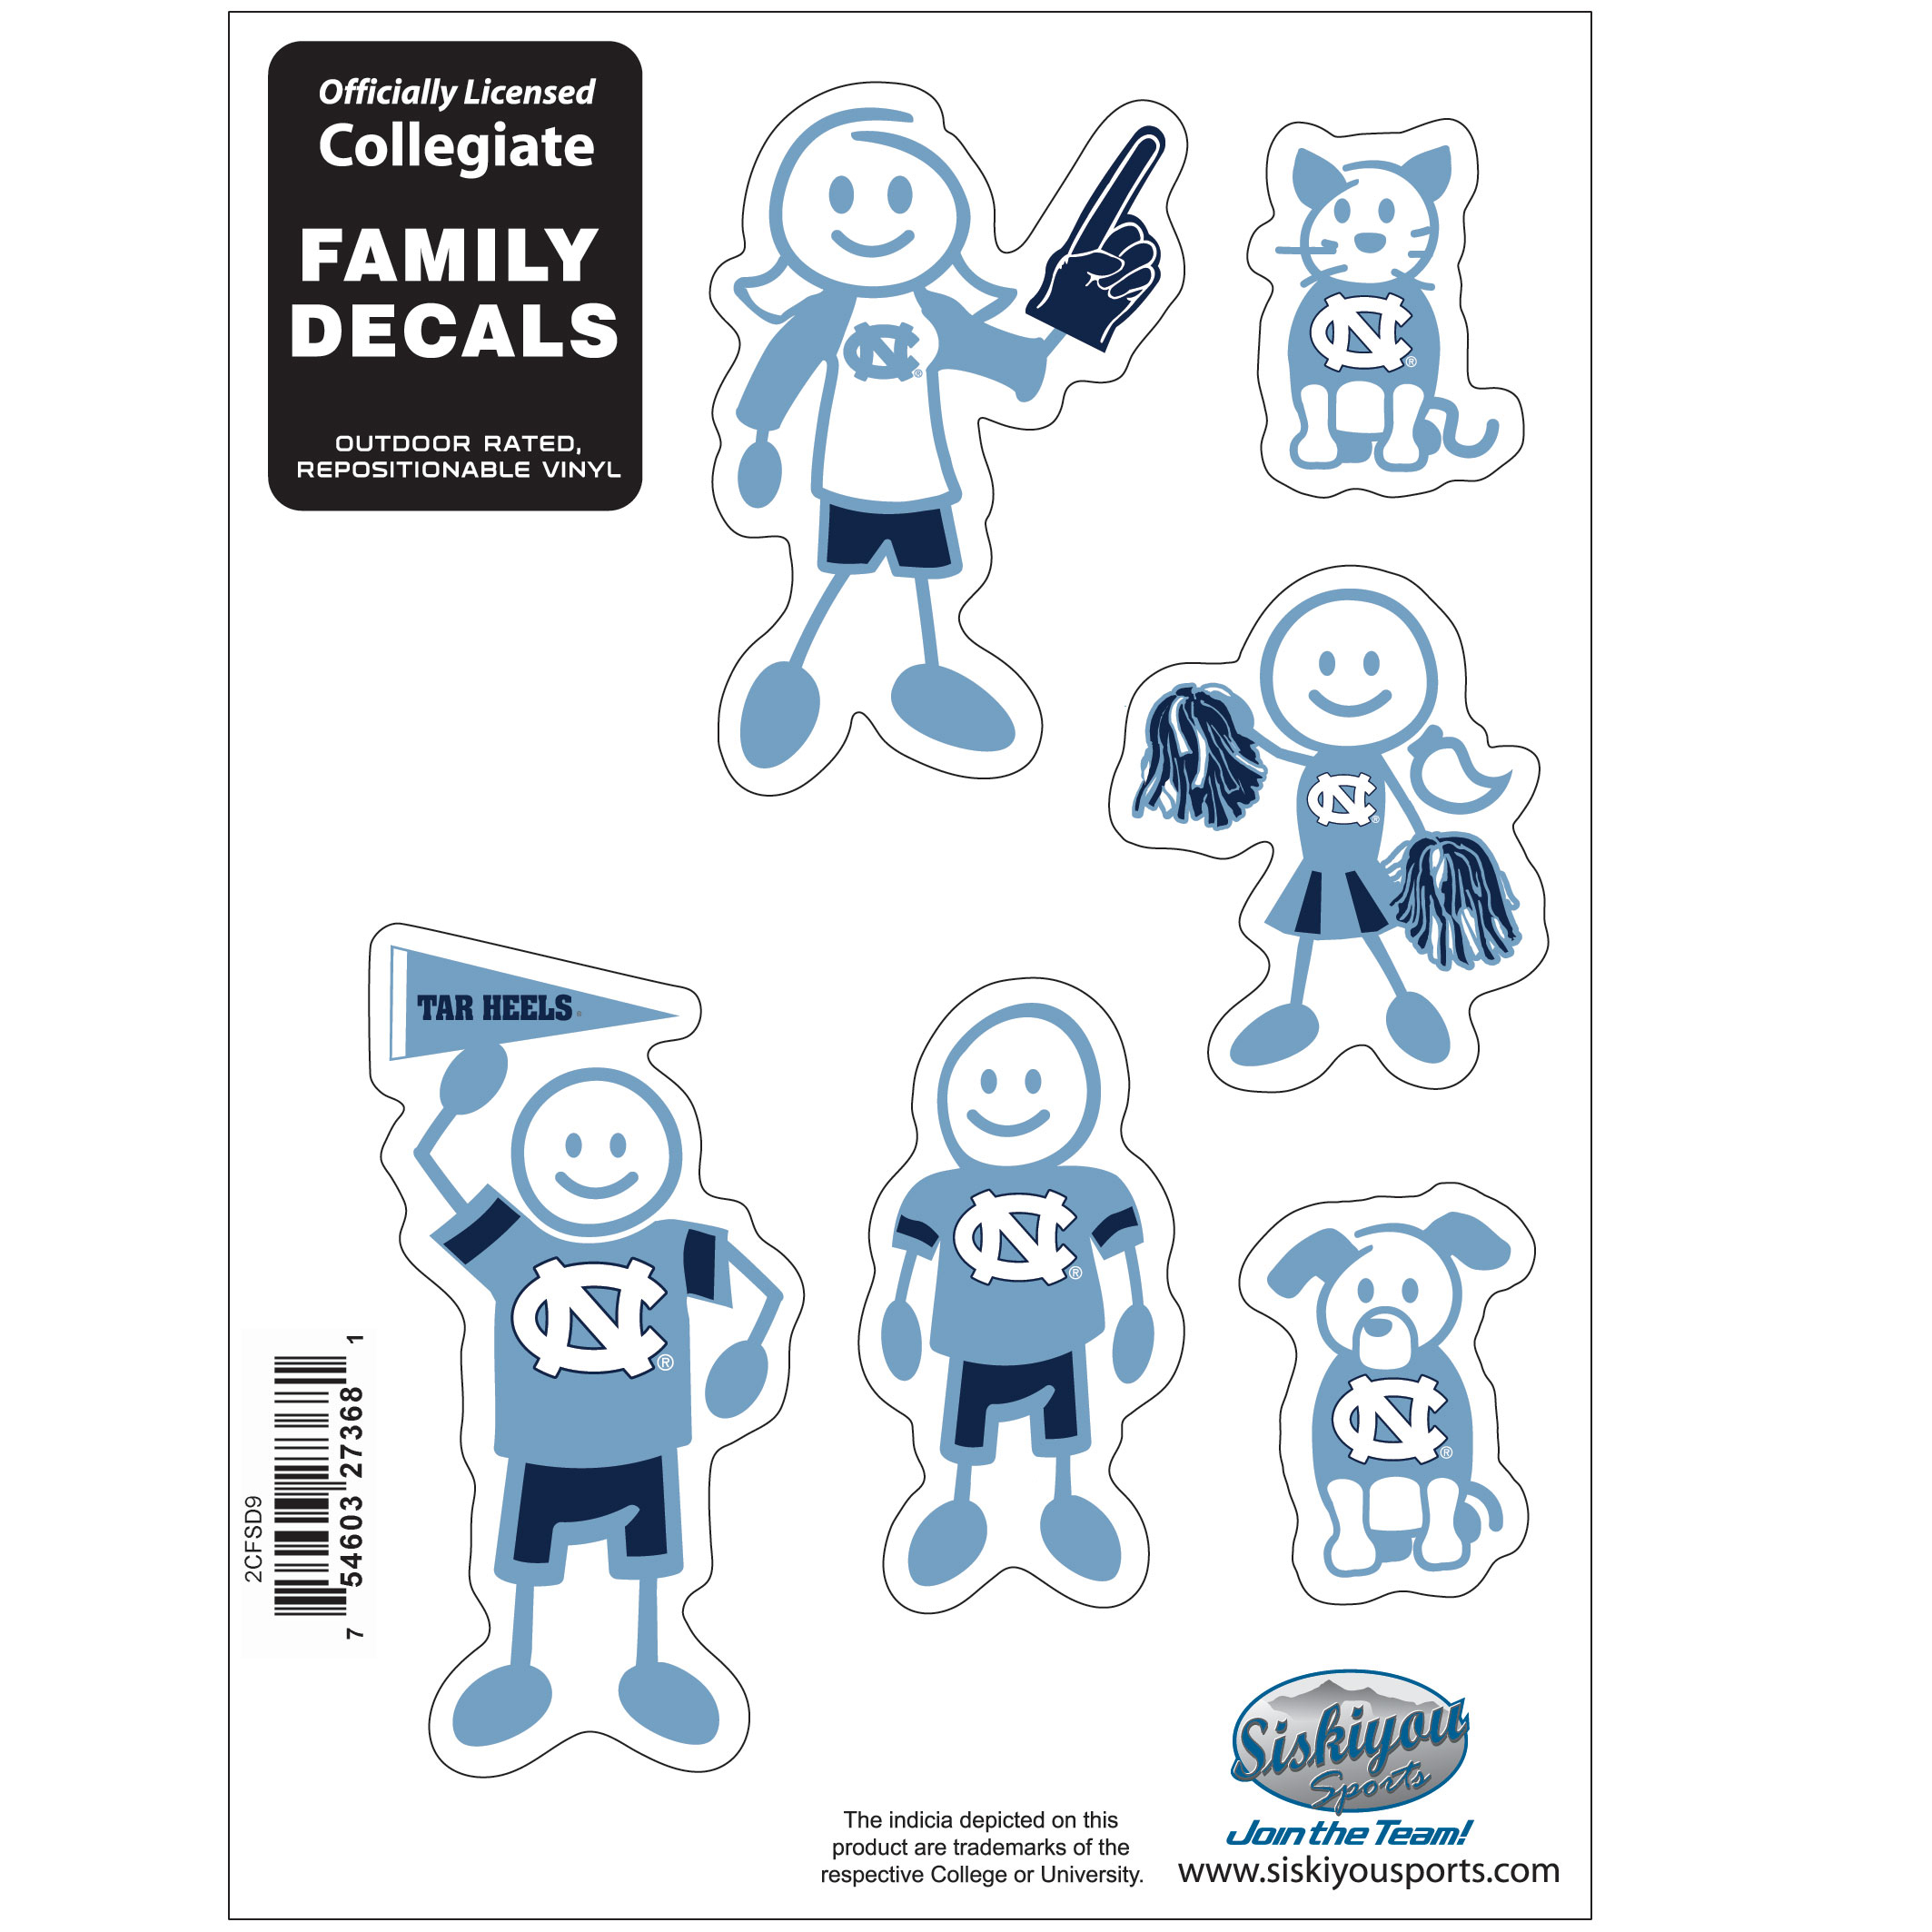 N. Carolina Tar Heels Family Decal Set Small - Show off your team pride with our N. Carolina Tar Heels family automotive decals. The set includes 6 individual family themed decals that each feature the team logo. The 5 x 7 inch decal set is made of outdoor rated, repositionable vinyl for durability and easy application.